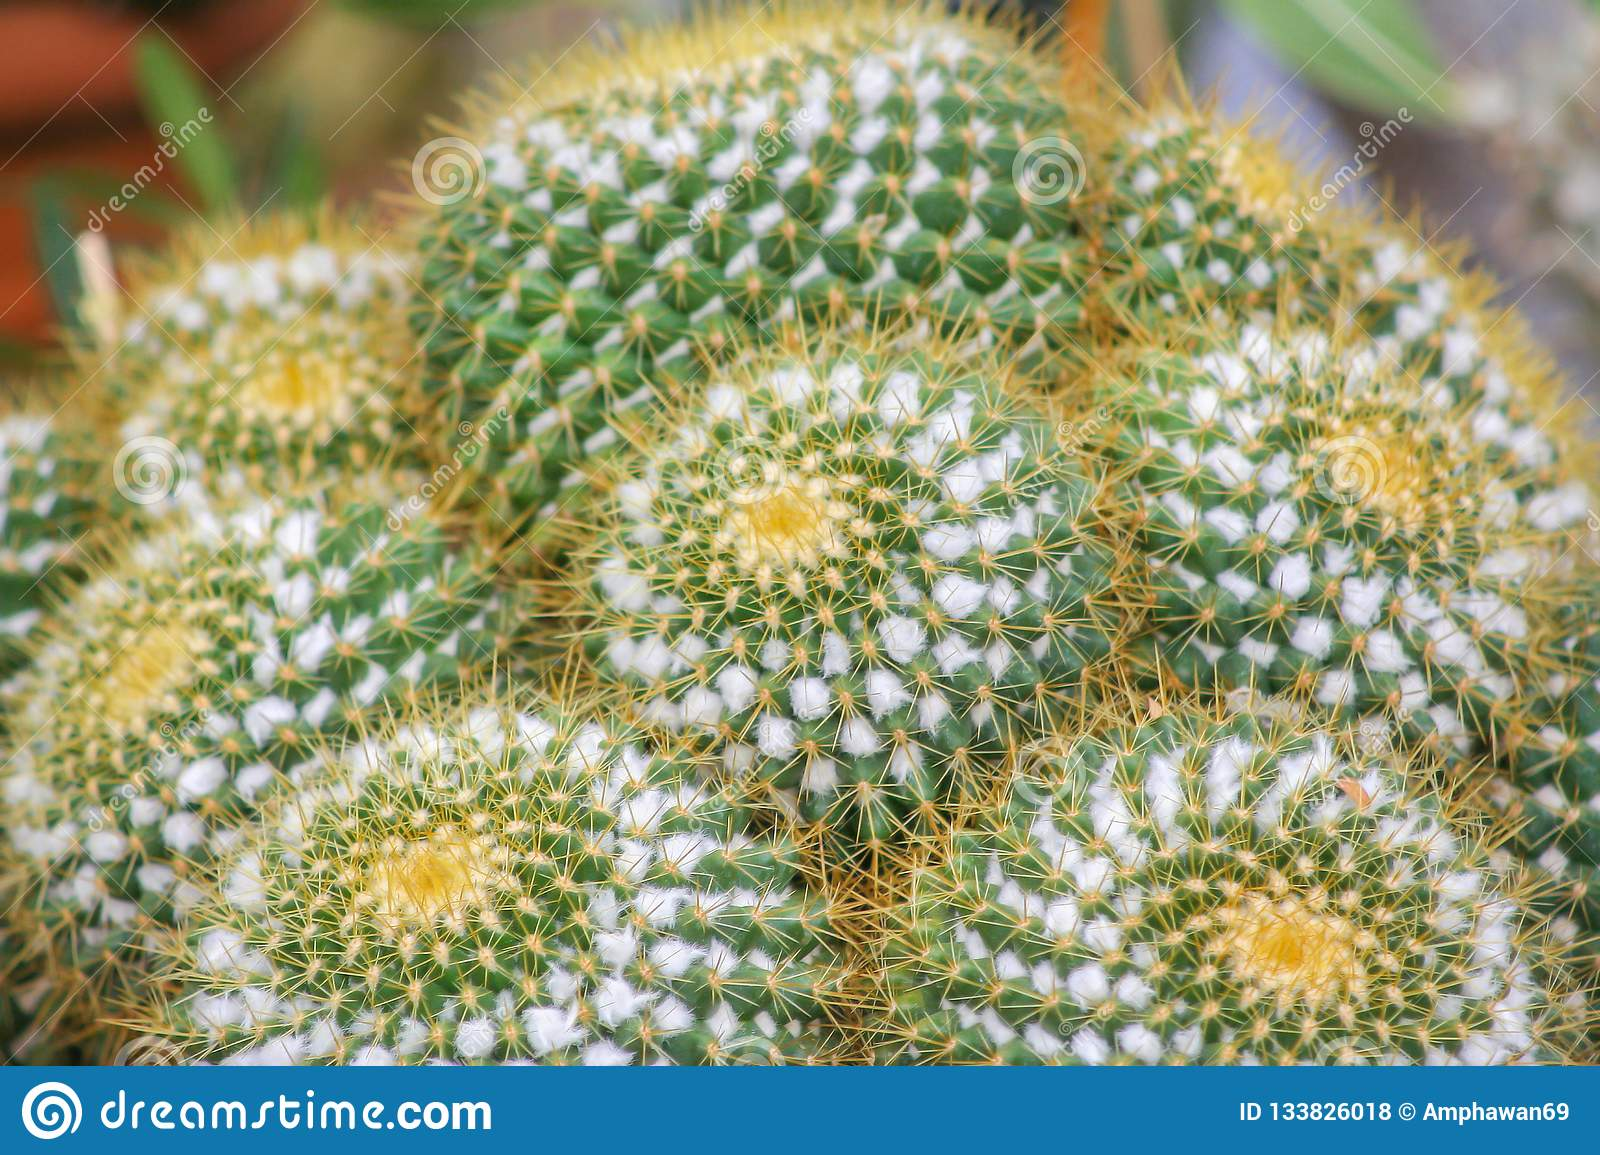 Echinocactus grusonii or golden barrel cactus ,Pot ornamental plant